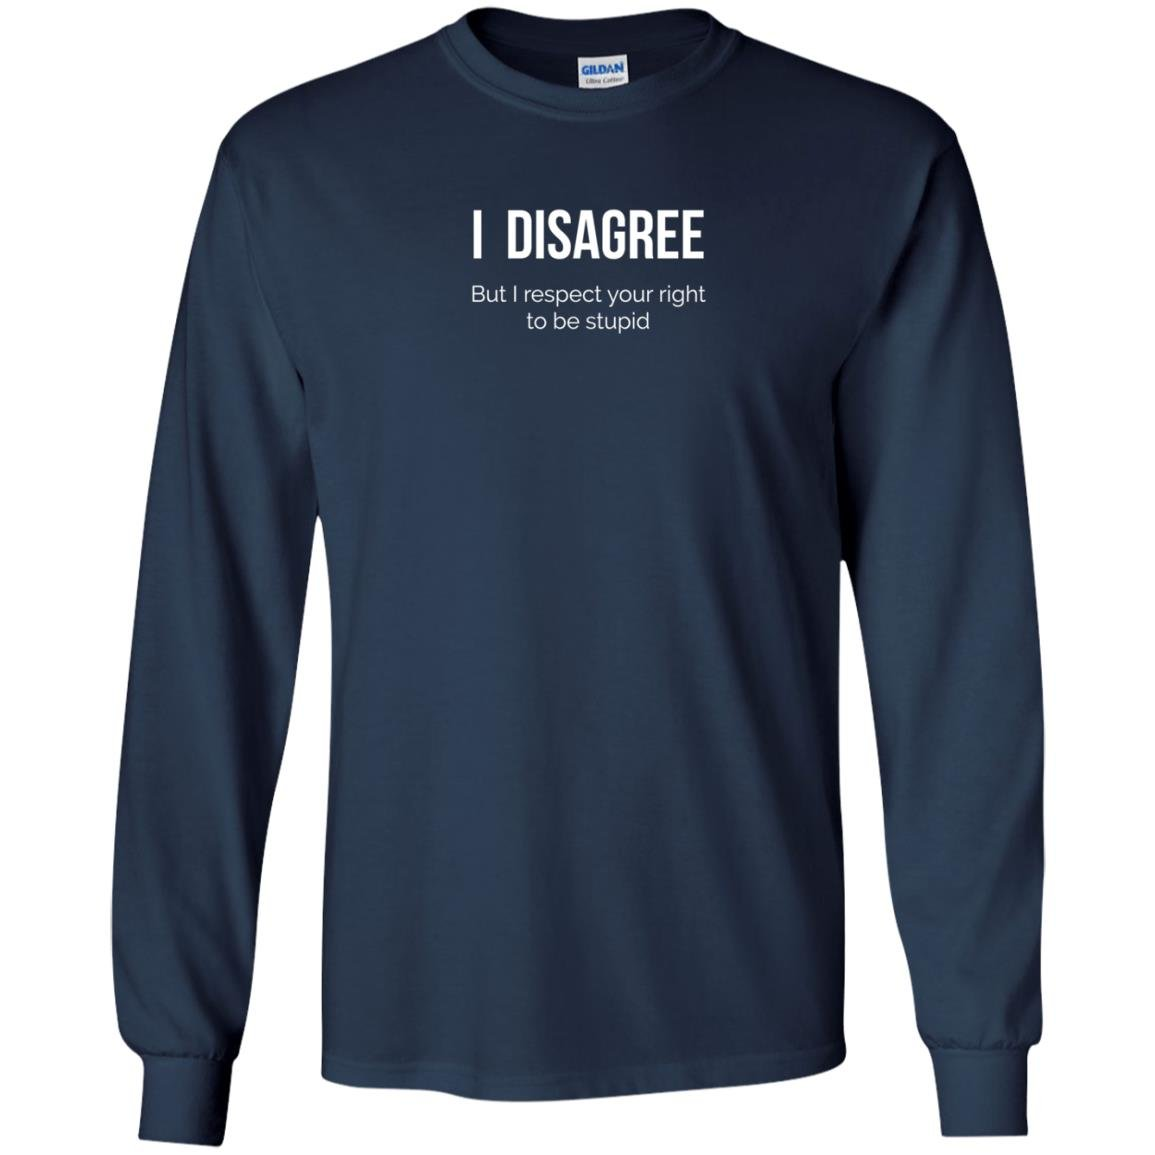 image 2206 - I Disagree But I Respect Your Right To Be Stupid shirt